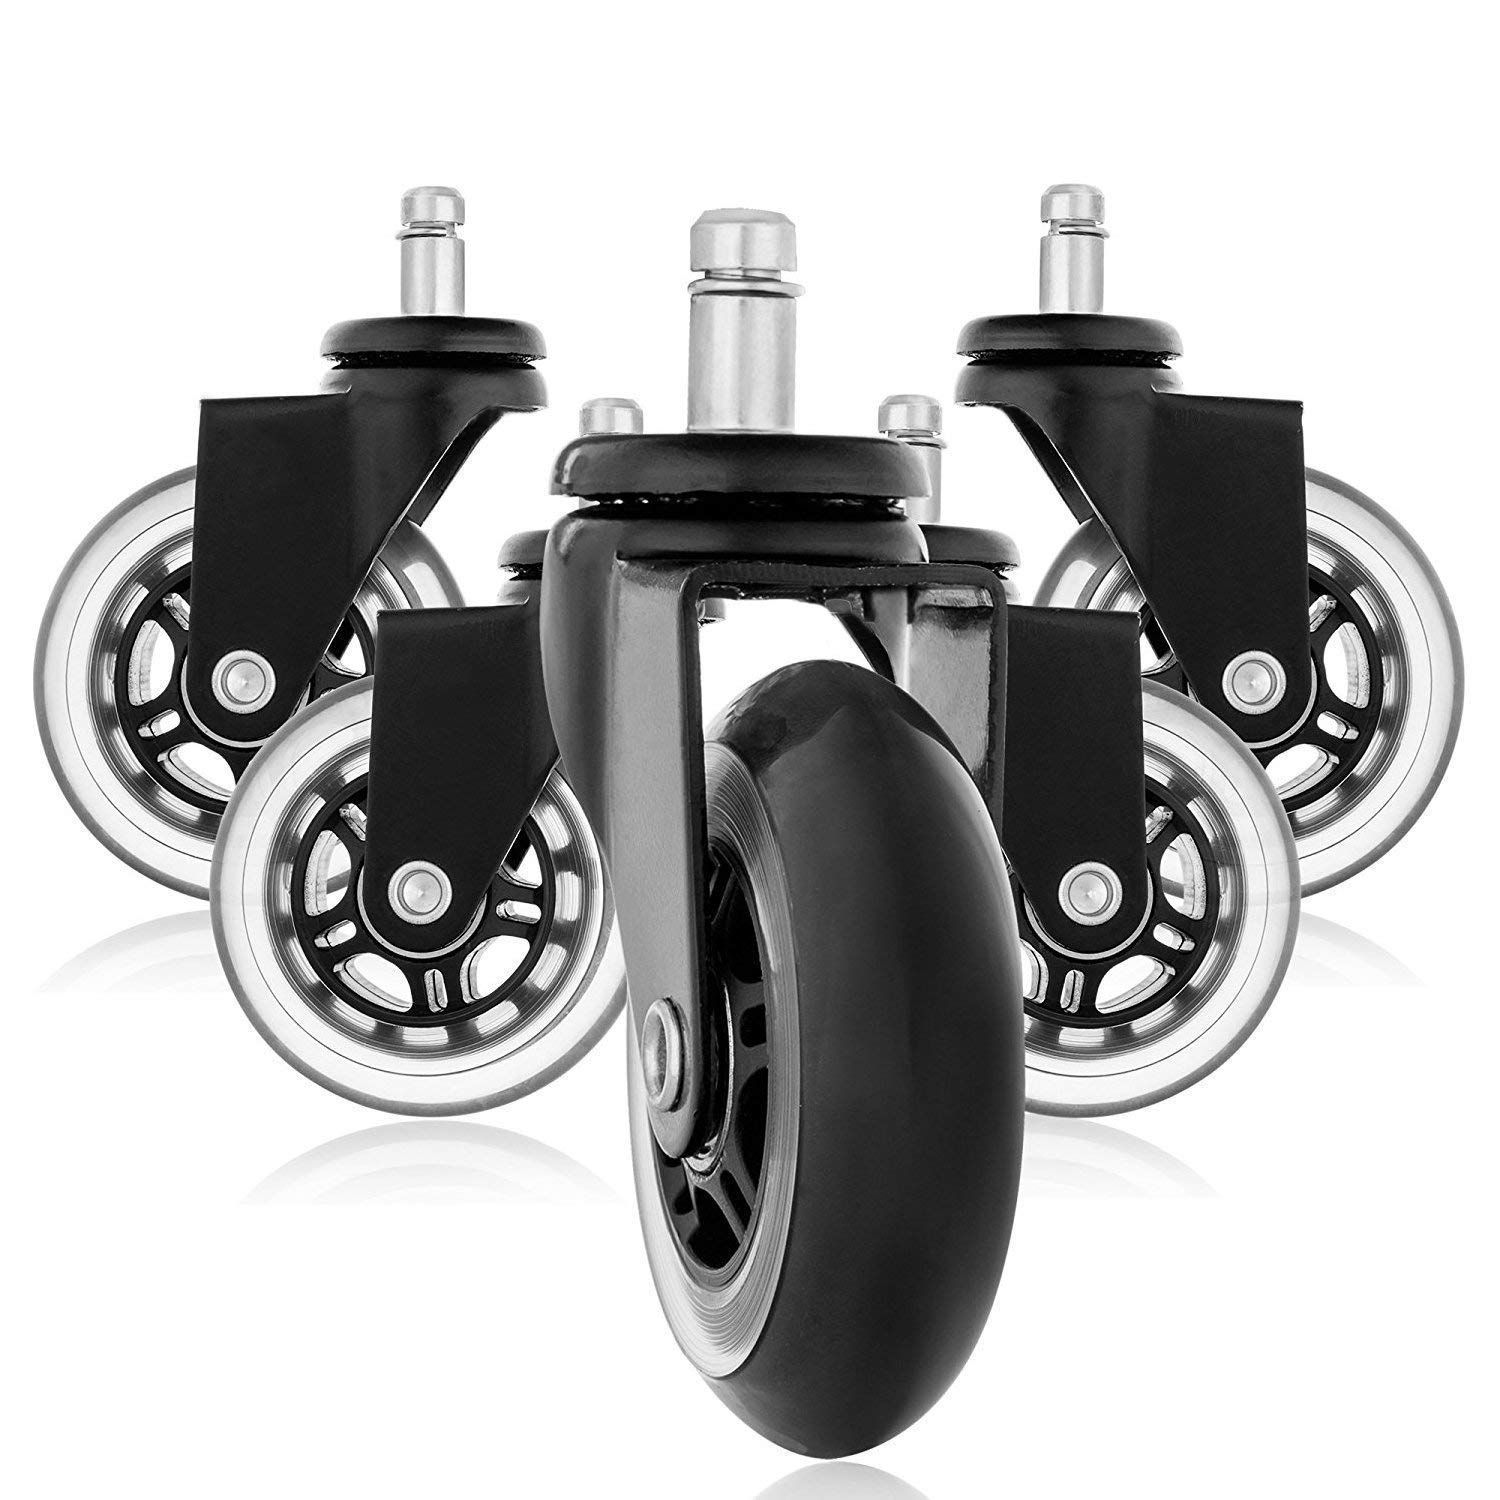 5PCS Universal Mute Wheel Replacement Office Chair Swivel Casters Furniture PU Smooth and Quiet Rollers Black 550 lbs Total 5pcs screw port universal mute wheel 2 replacement office chair swivel casters pu rollers black white castor 360 degree